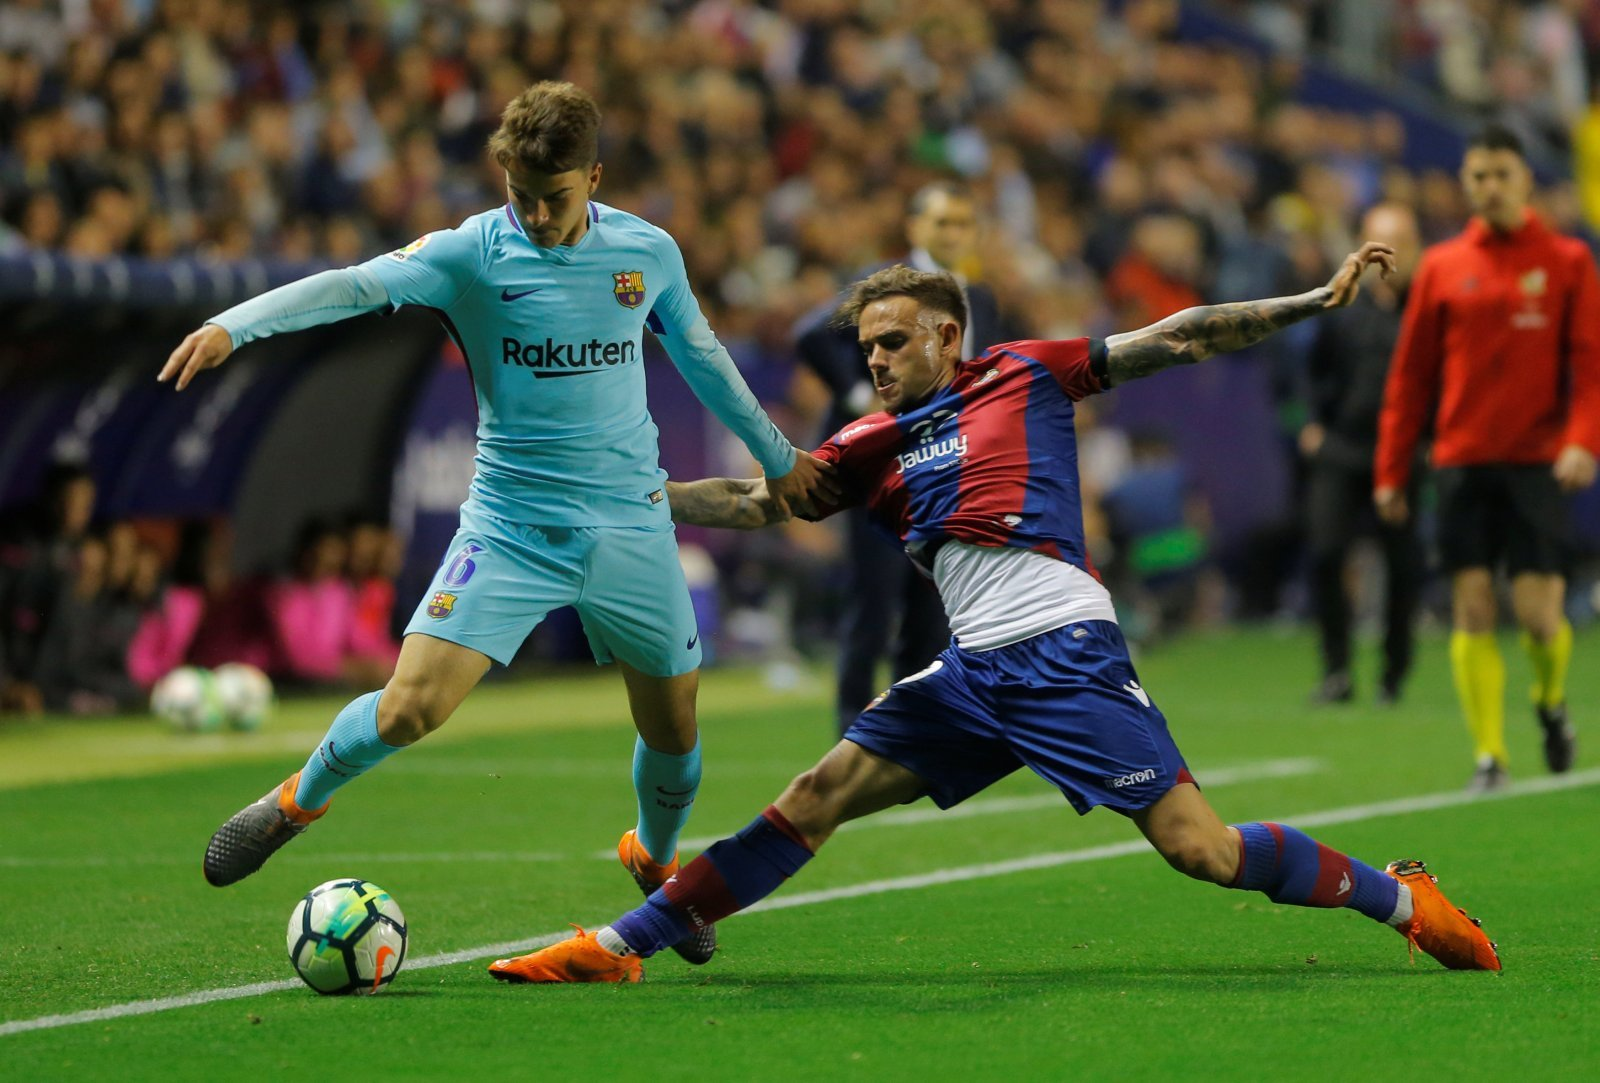 Sky Sports' Dharmesh Sheth hints that Denis Suarez to Arsenal has strong potential